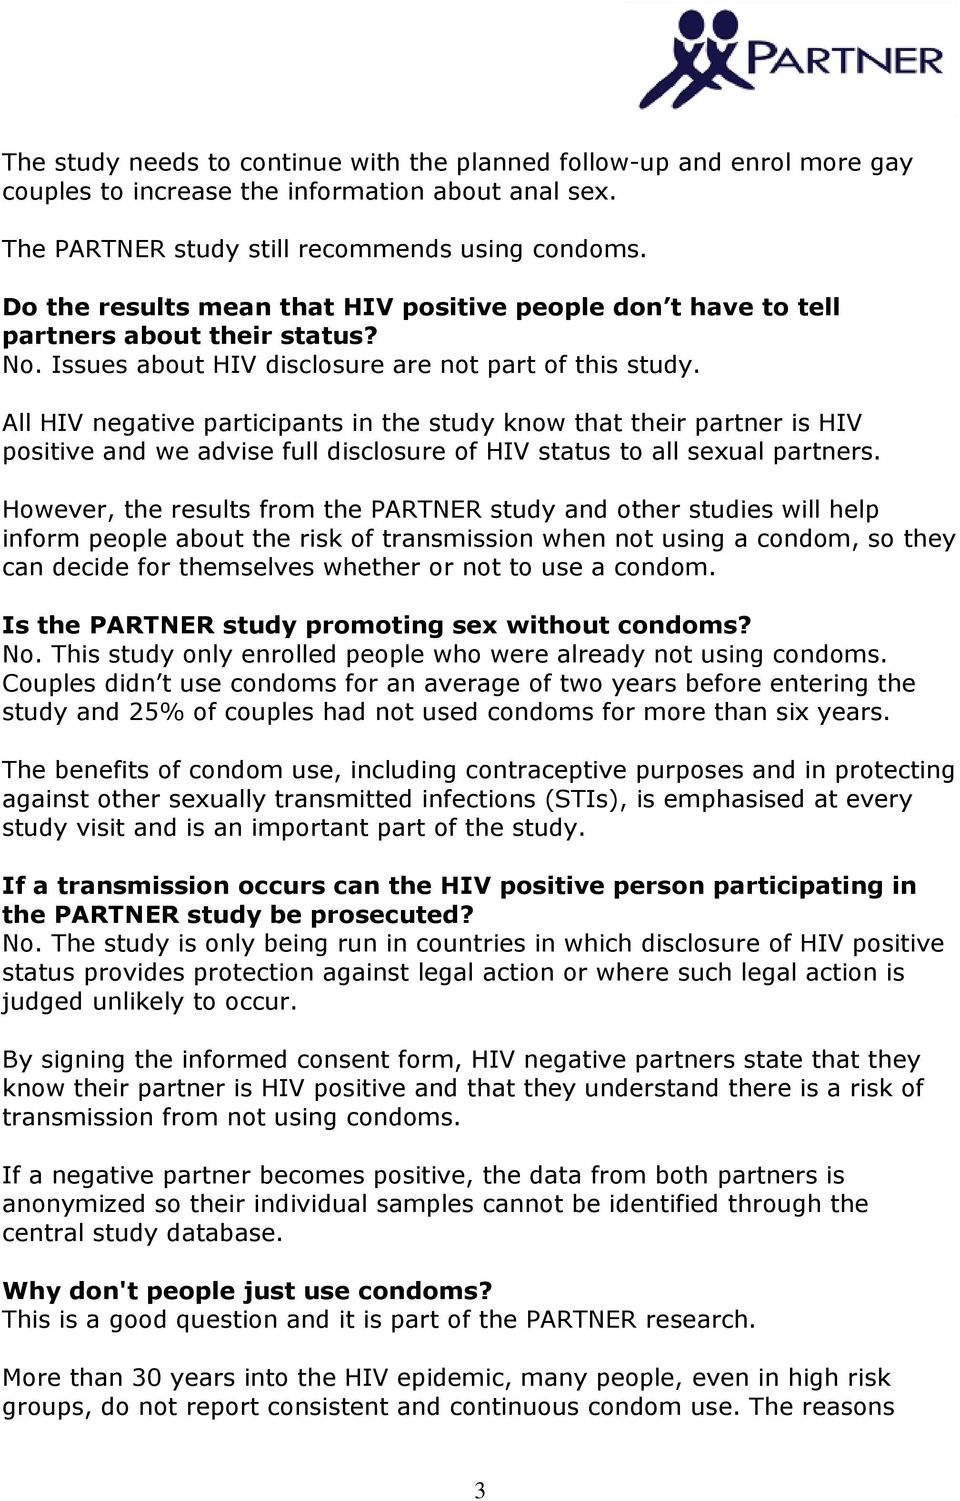 All HIV negative participants in the study know that their partner is HIV positive and we advise full disclosure of HIV status to all sexual partners.